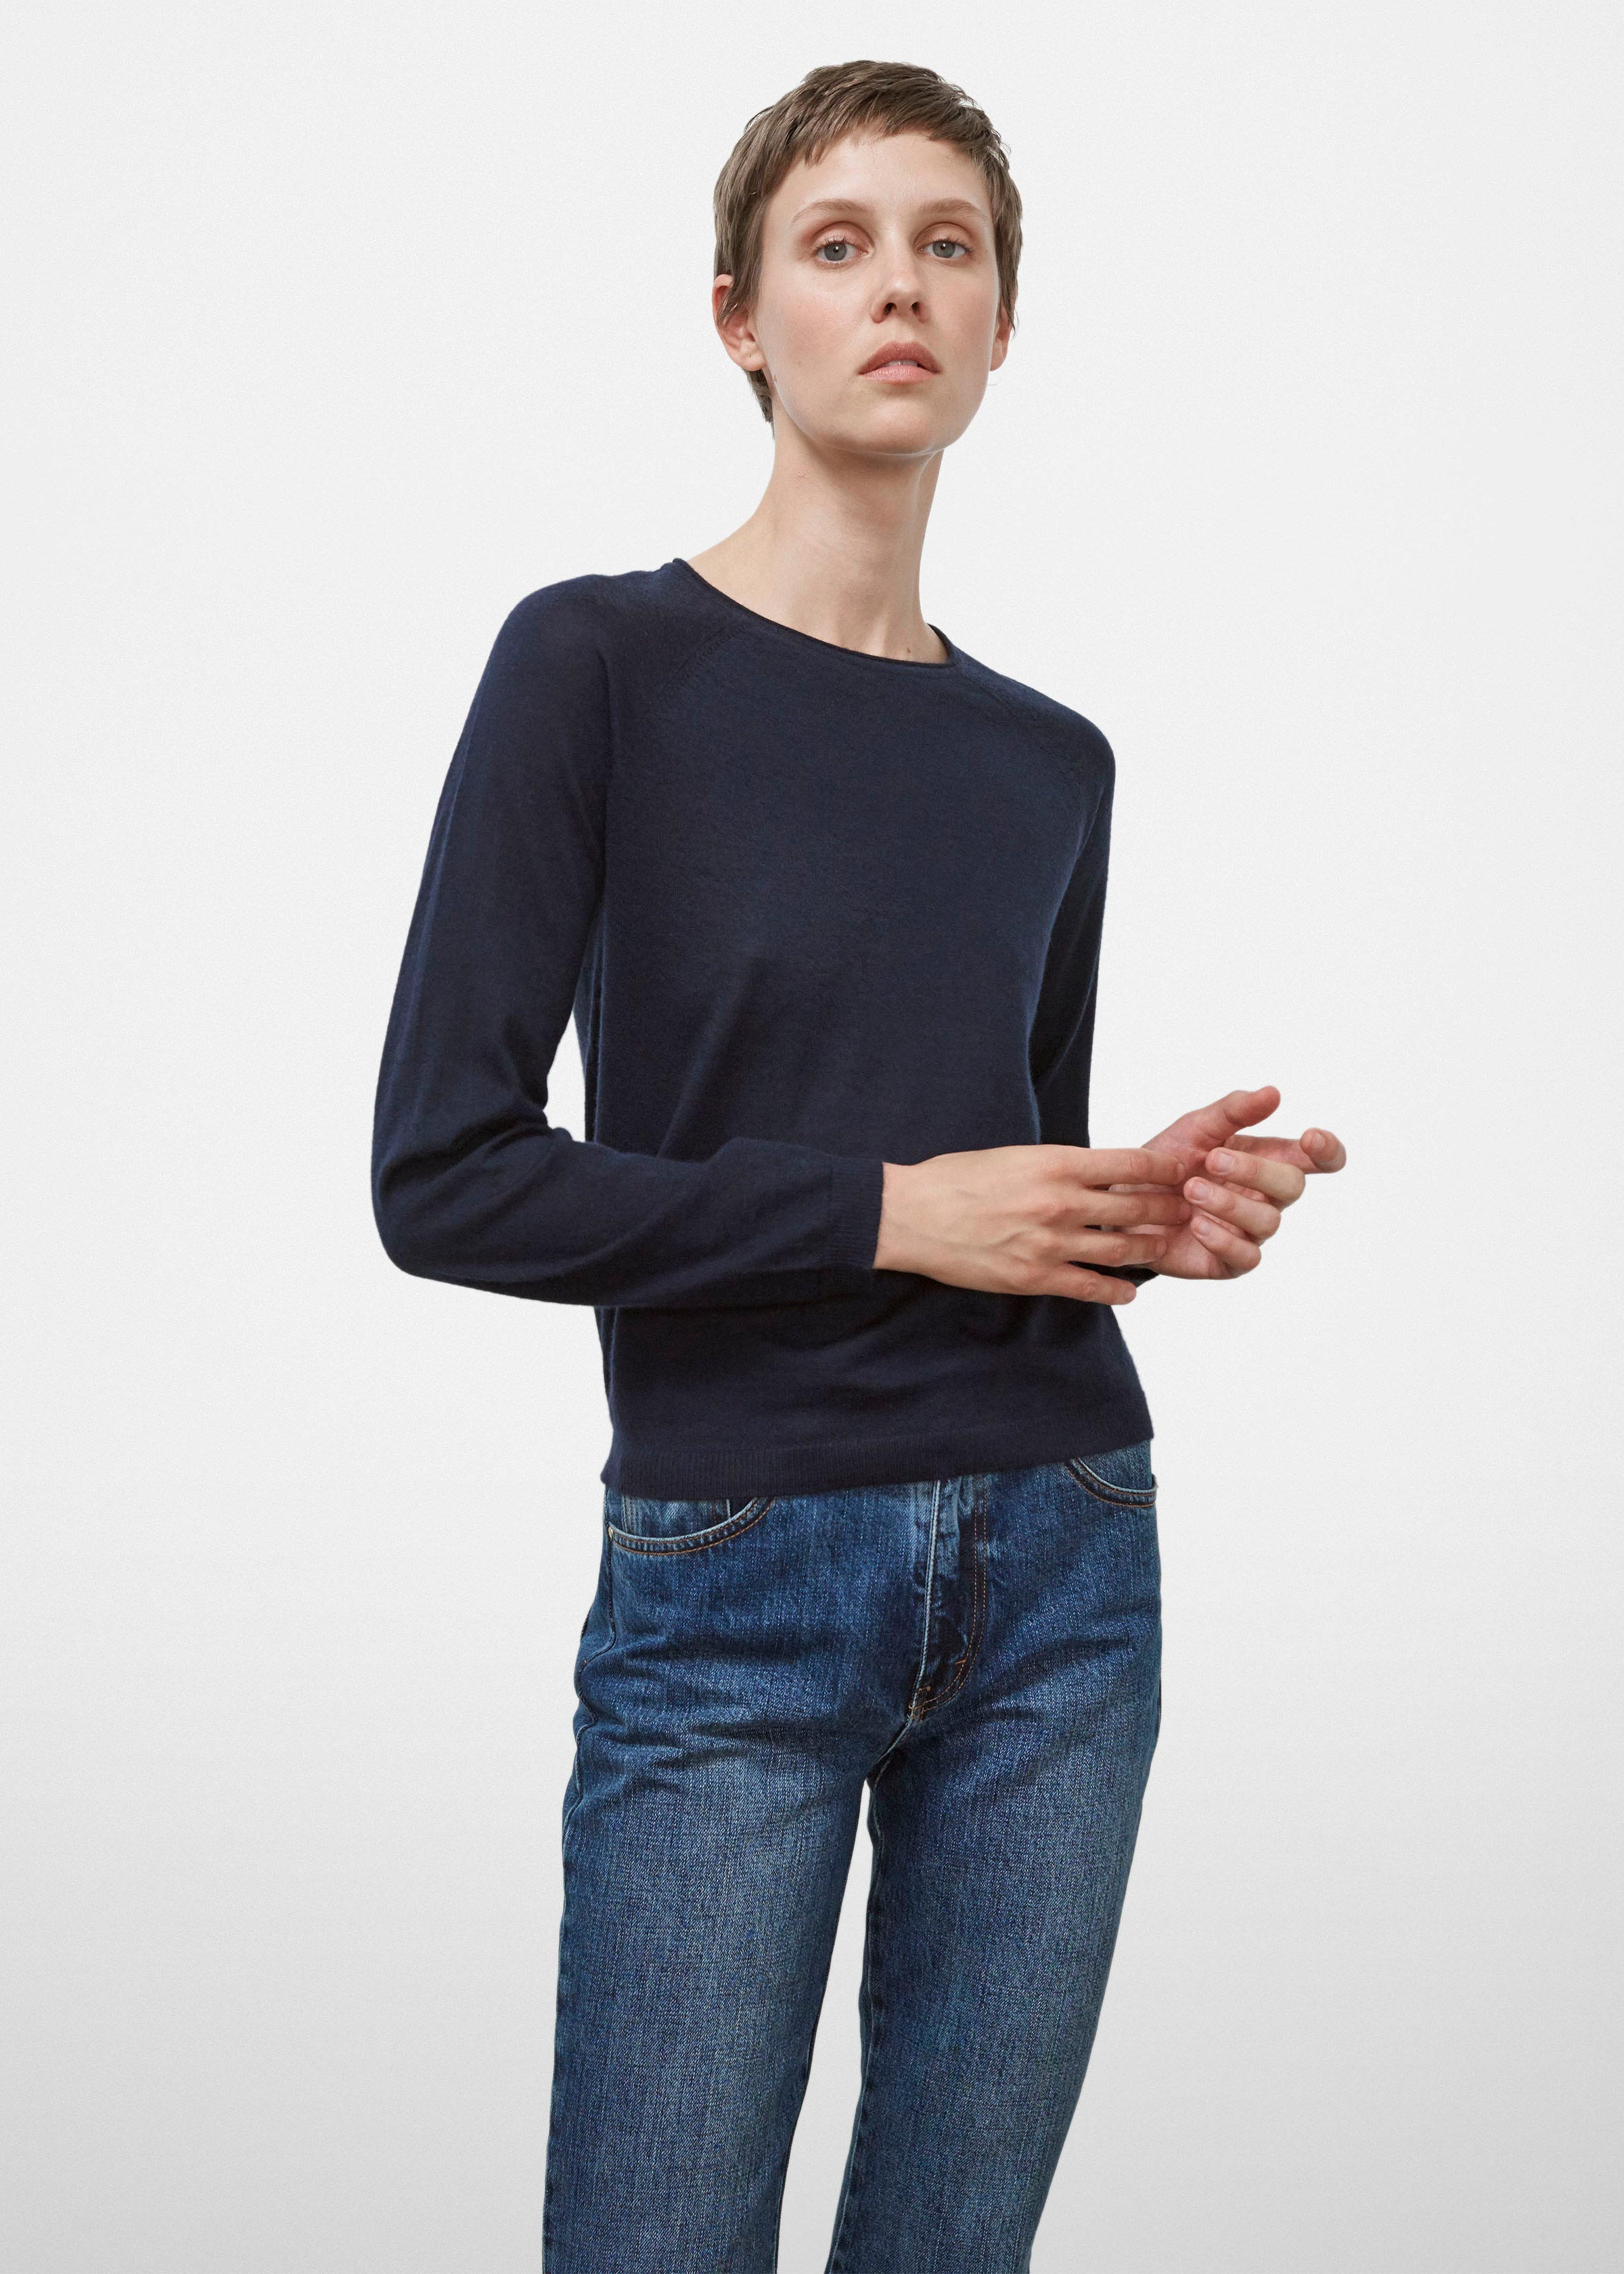 Raglan Sleeve Sweater